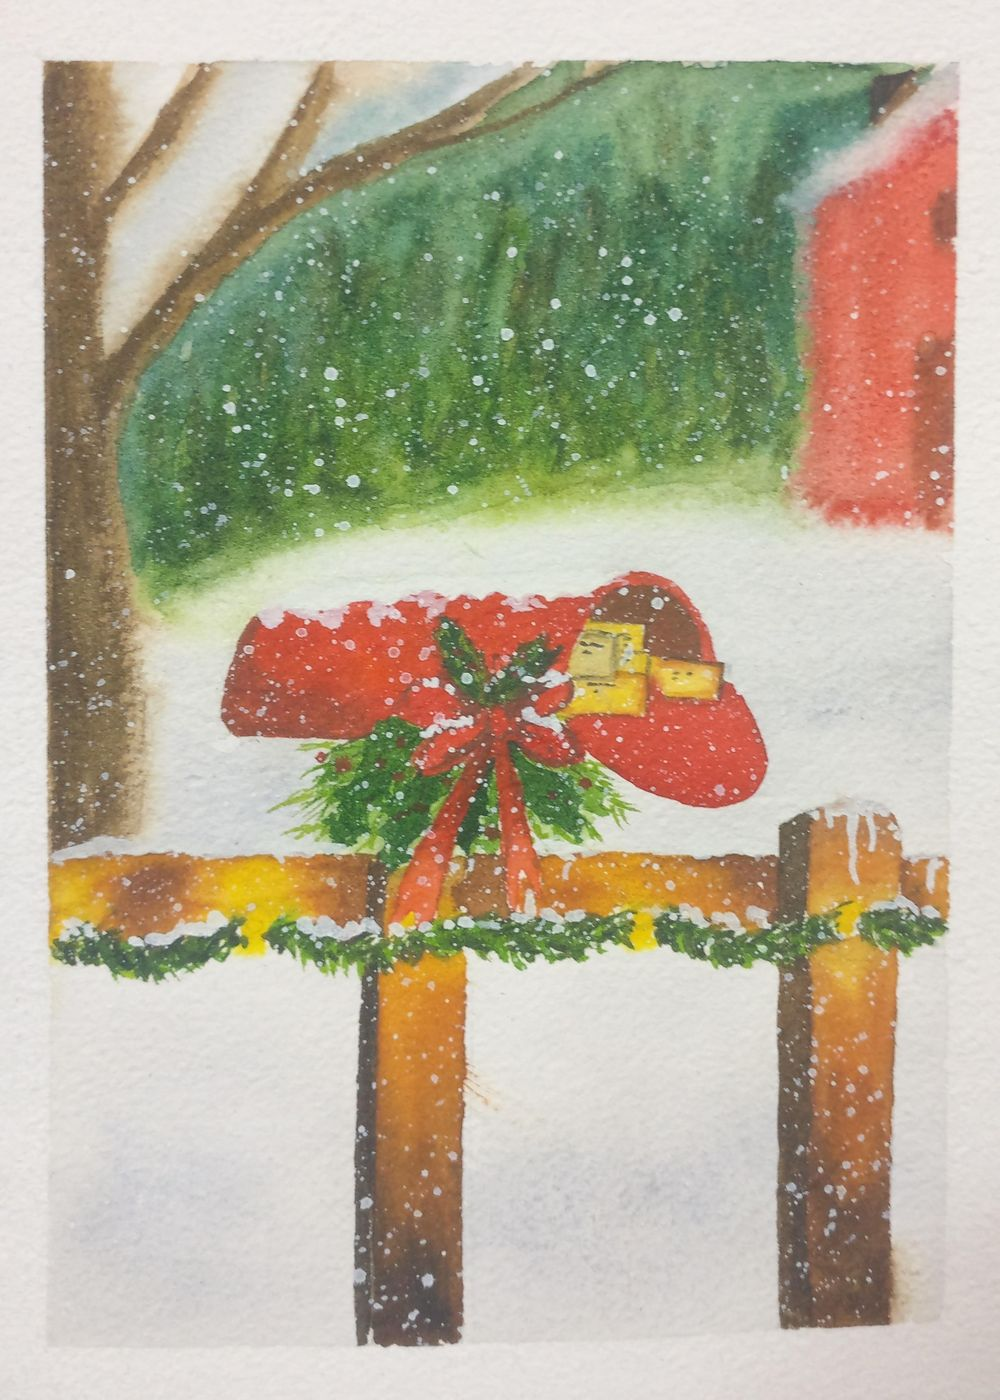 Christmas with watercolors - image 21 - student project